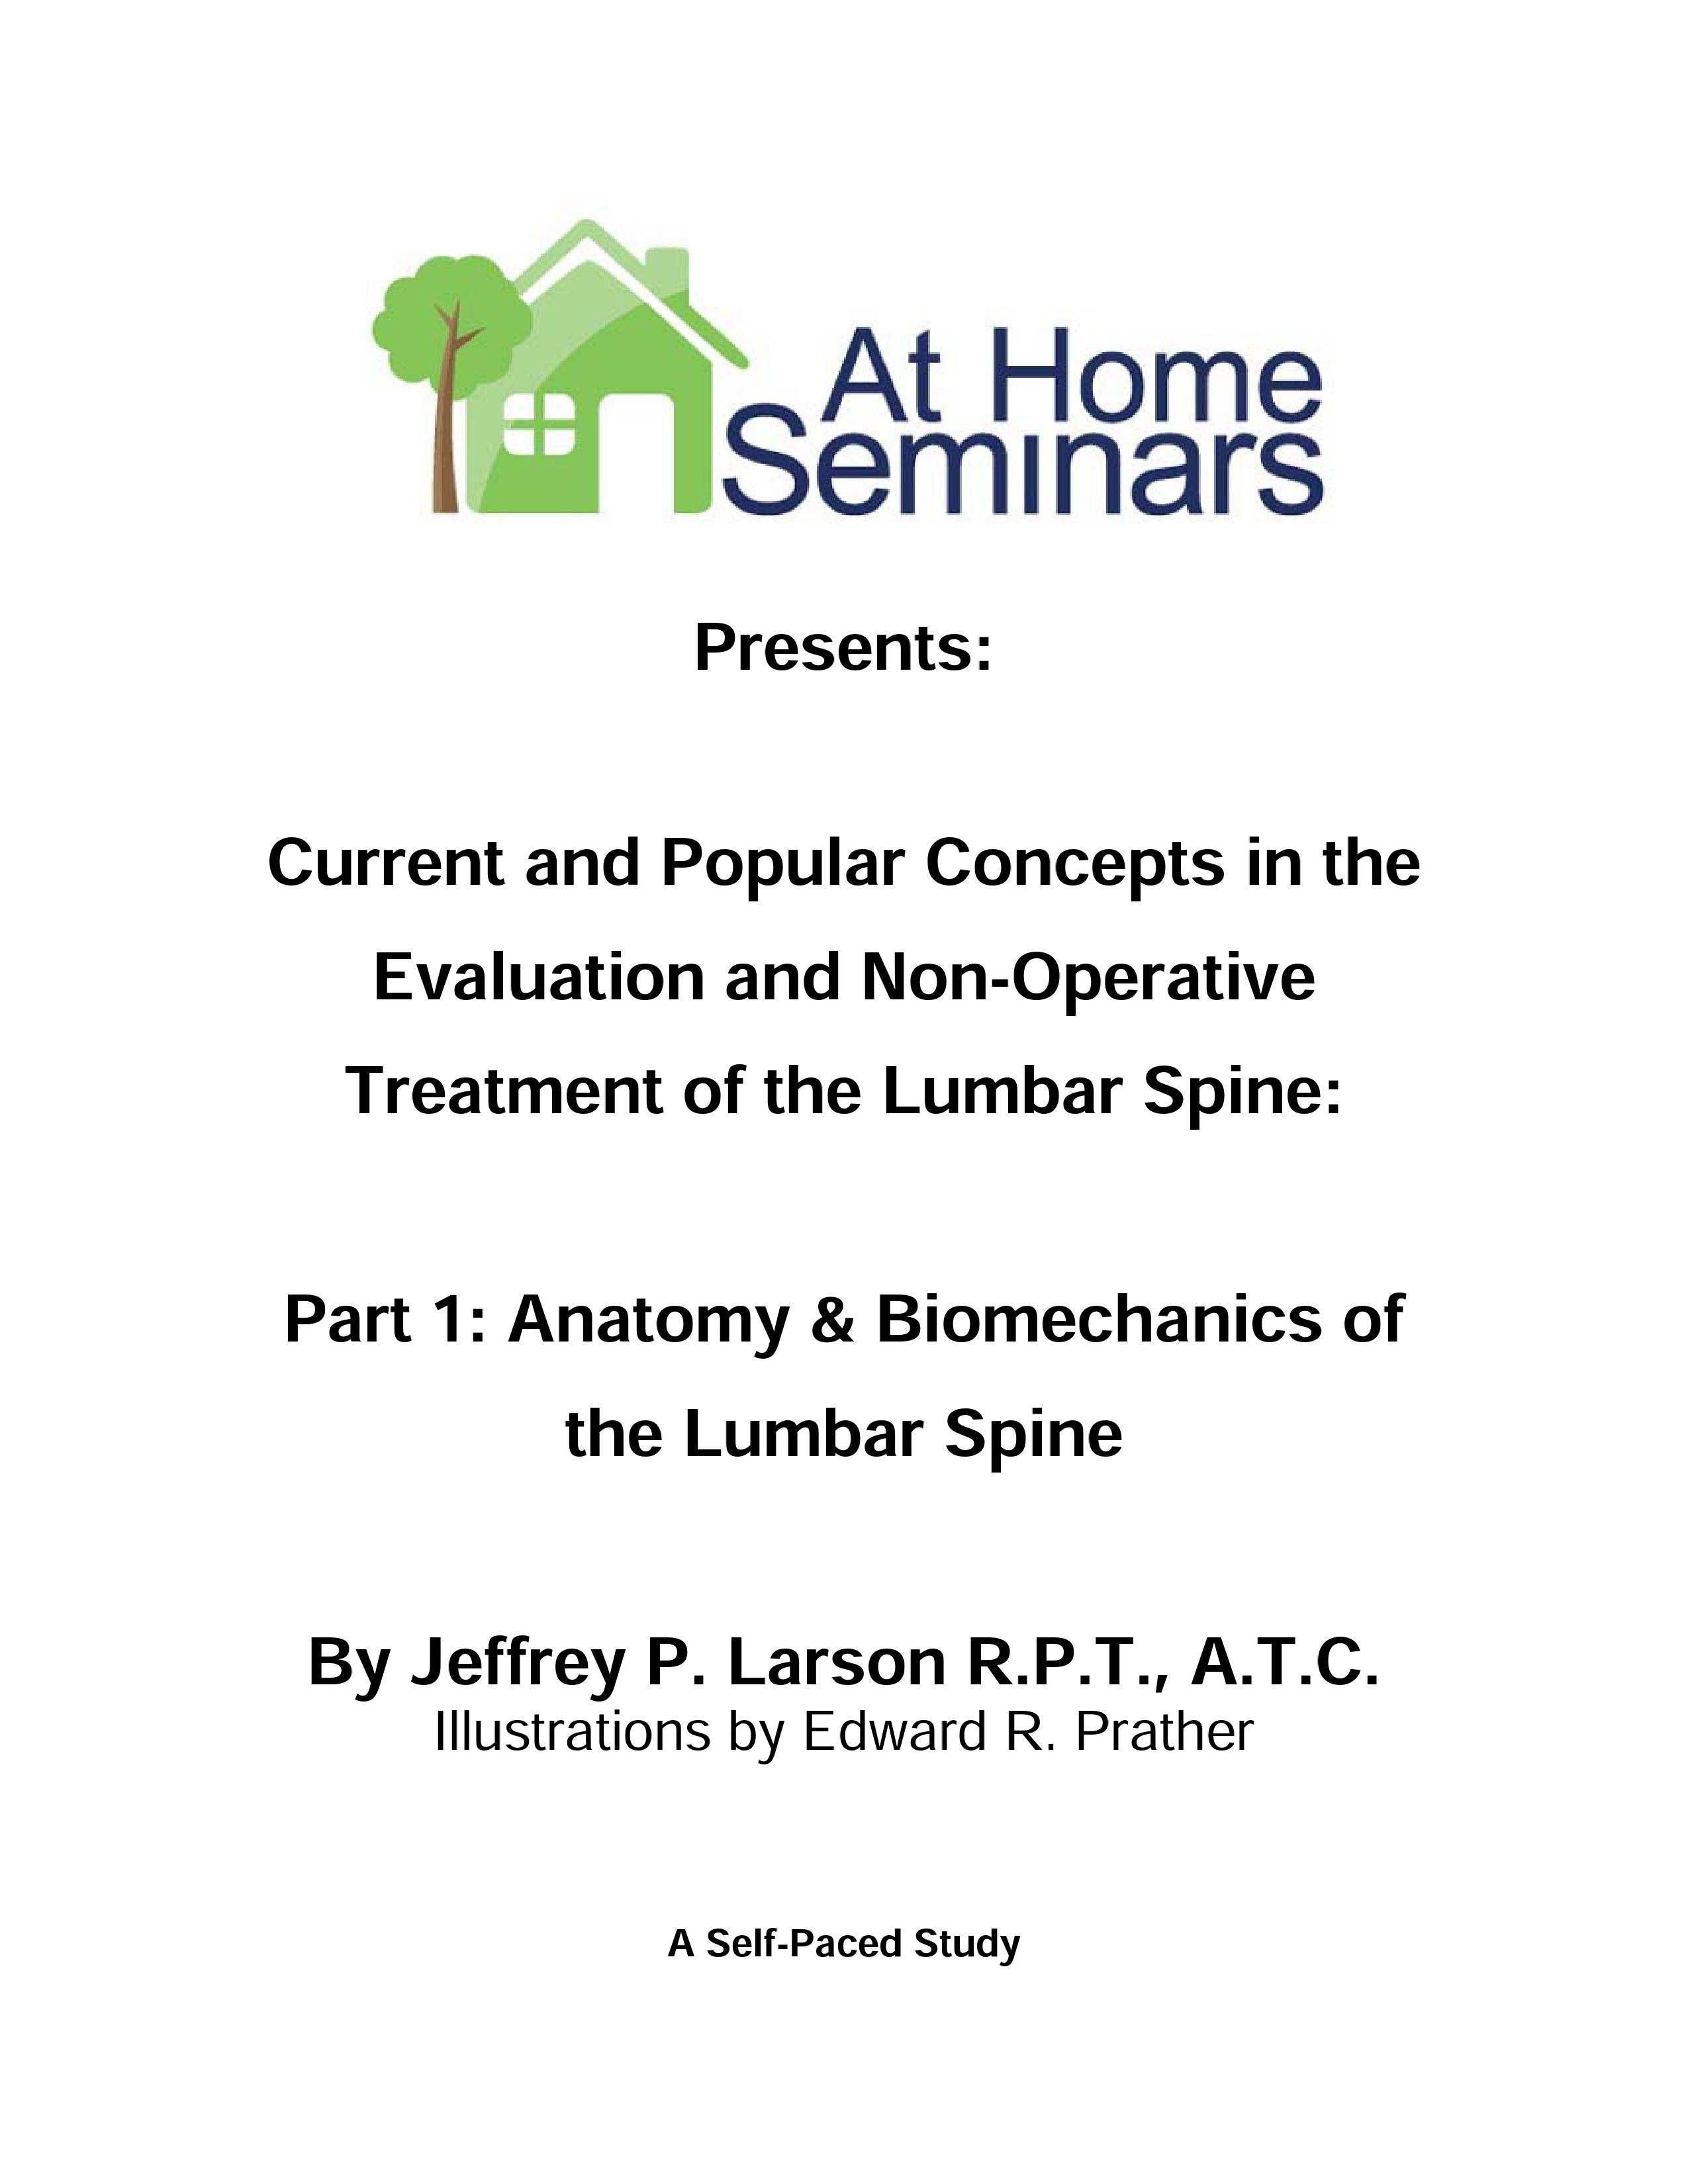 Lumbar Spine Anatomy And Biomechanics Physical Therapy